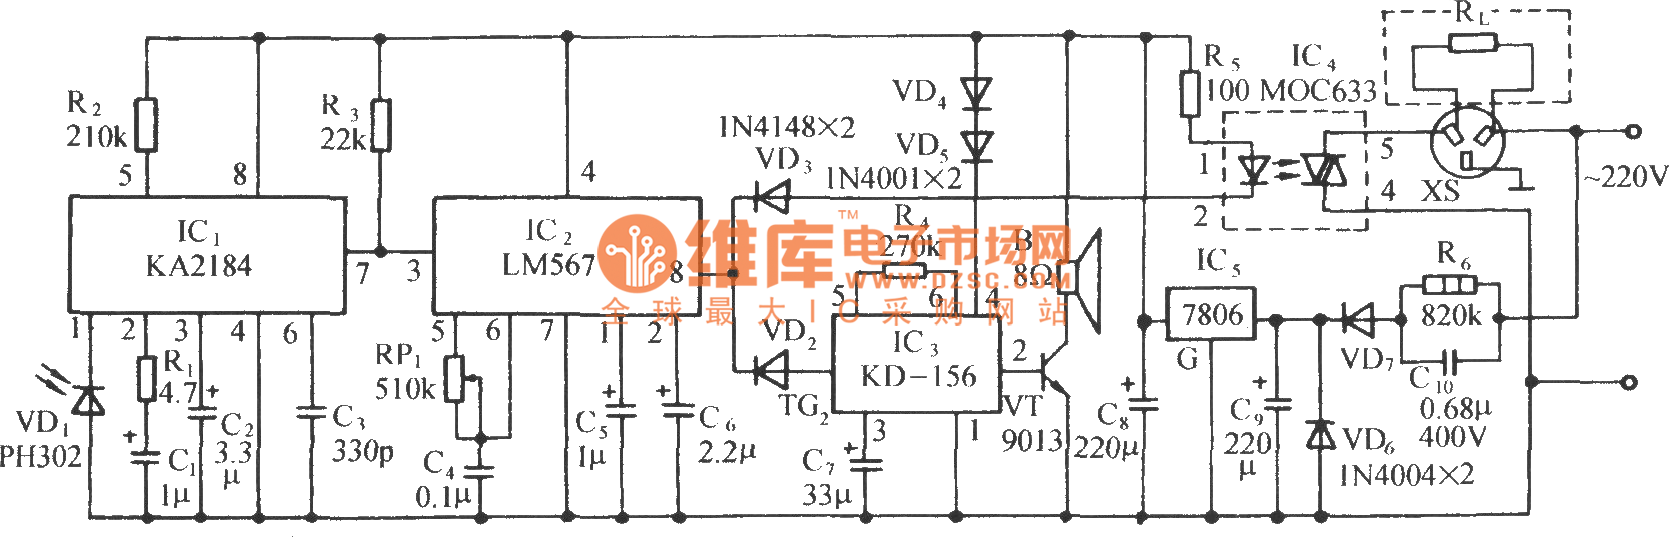 Household Appliances Infrared Remote Control Socket Circuit Diagram Fridge Refrigerator Door Alarm Engineersgarage